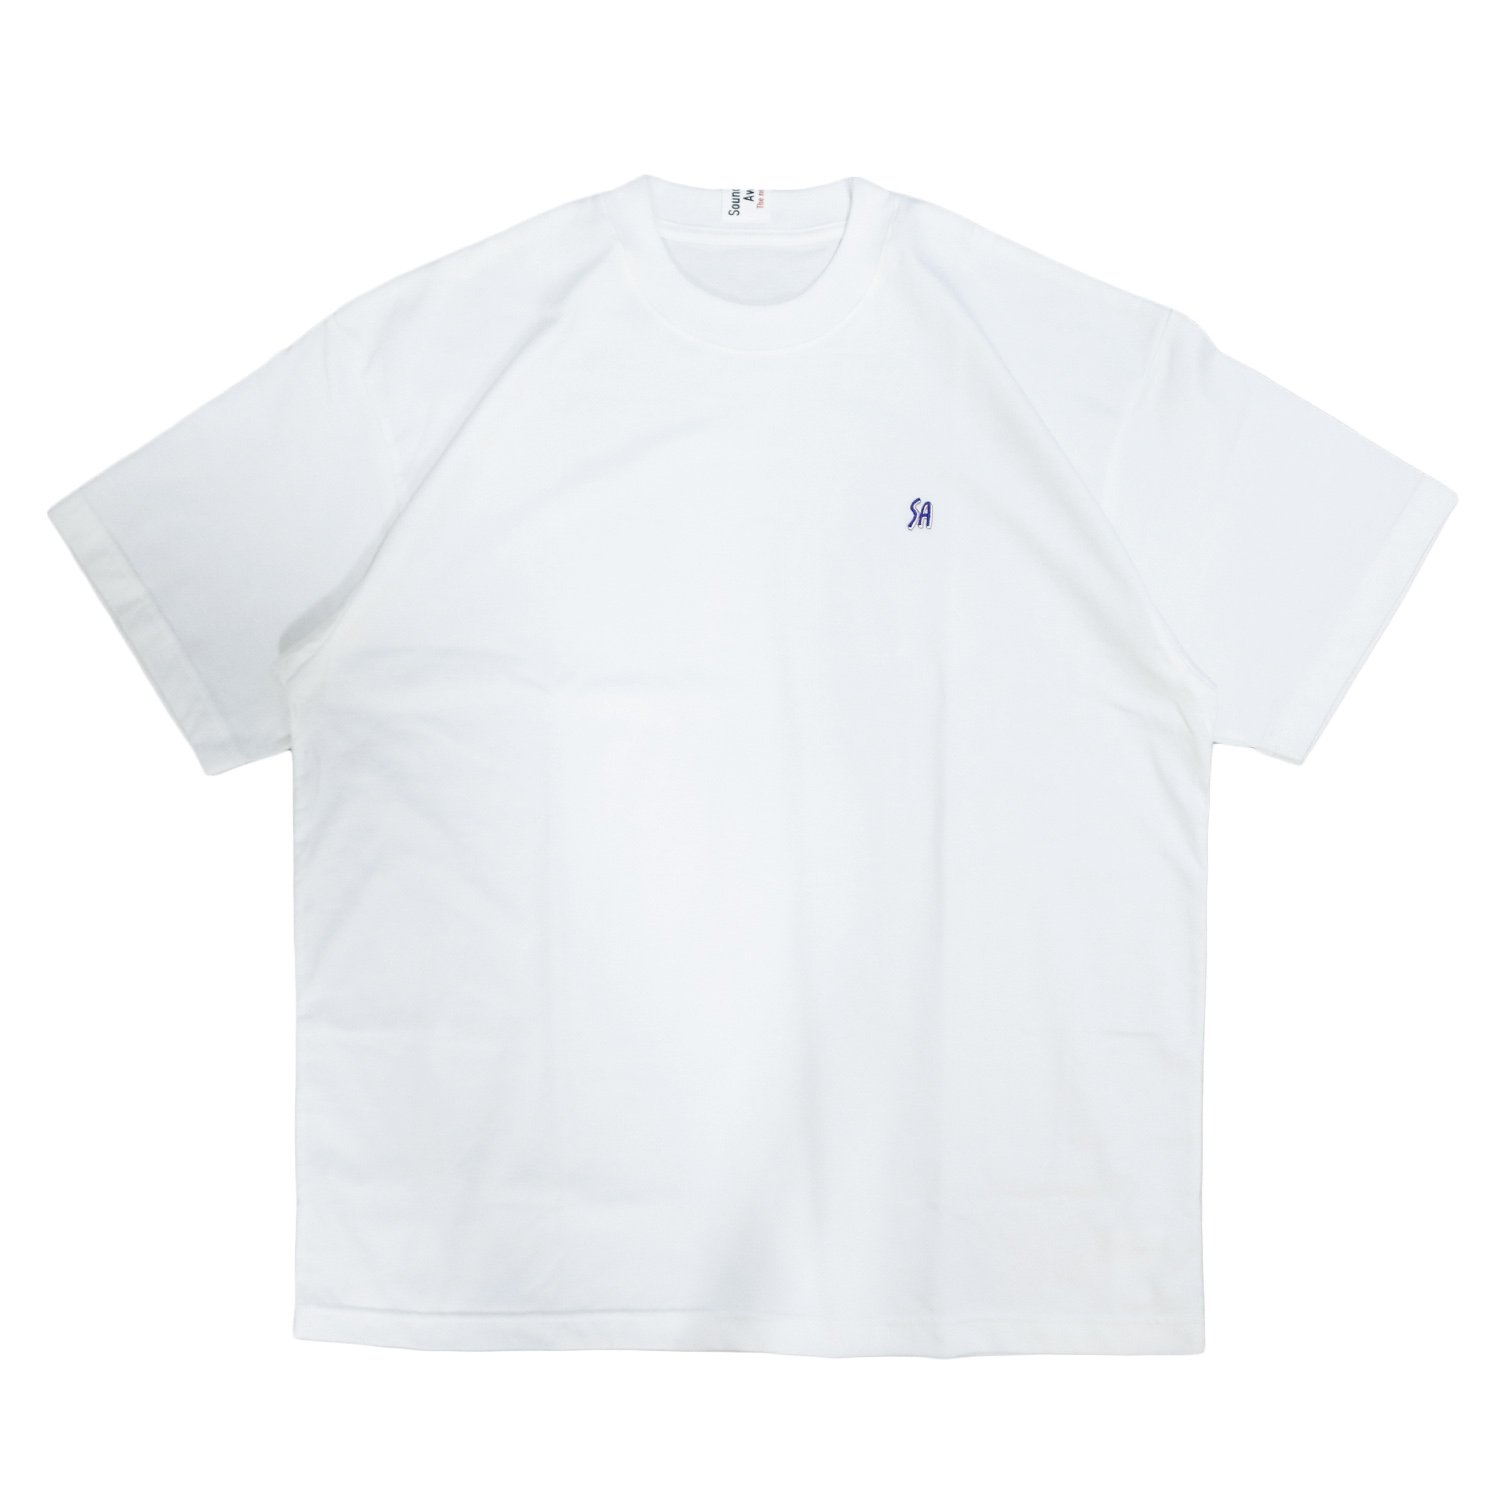 <img class='new_mark_img1' src='https://img.shop-pro.jp/img/new/icons8.gif' style='border:none;display:inline;margin:0px;padding:0px;width:auto;' />SOUNDS AWESOME /  SA Logo embroidery  T-shirt